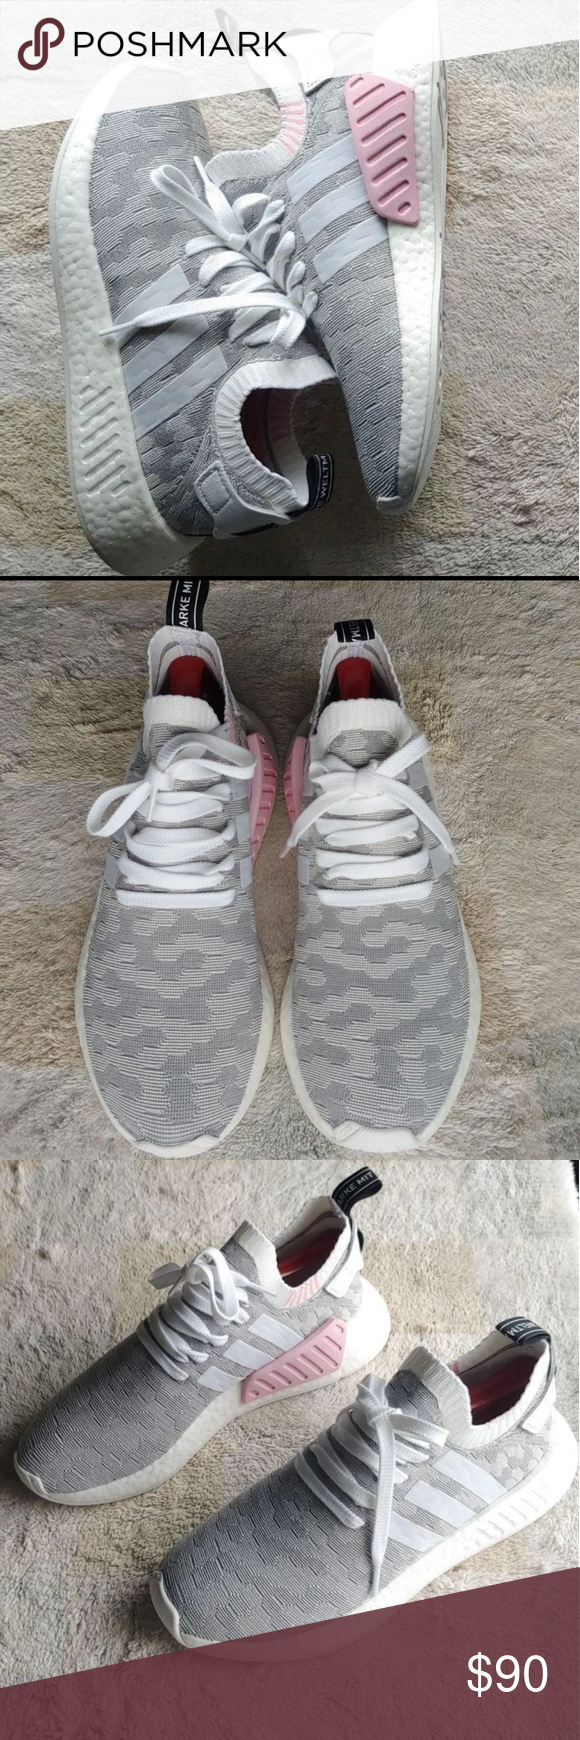 5f65bf6c0 New women s Adidas nmd R2 Women s Adidas nmd R2 size 10 brand new without  box white and grey colorway with pink accents adidas Shoes Athletic Shoes